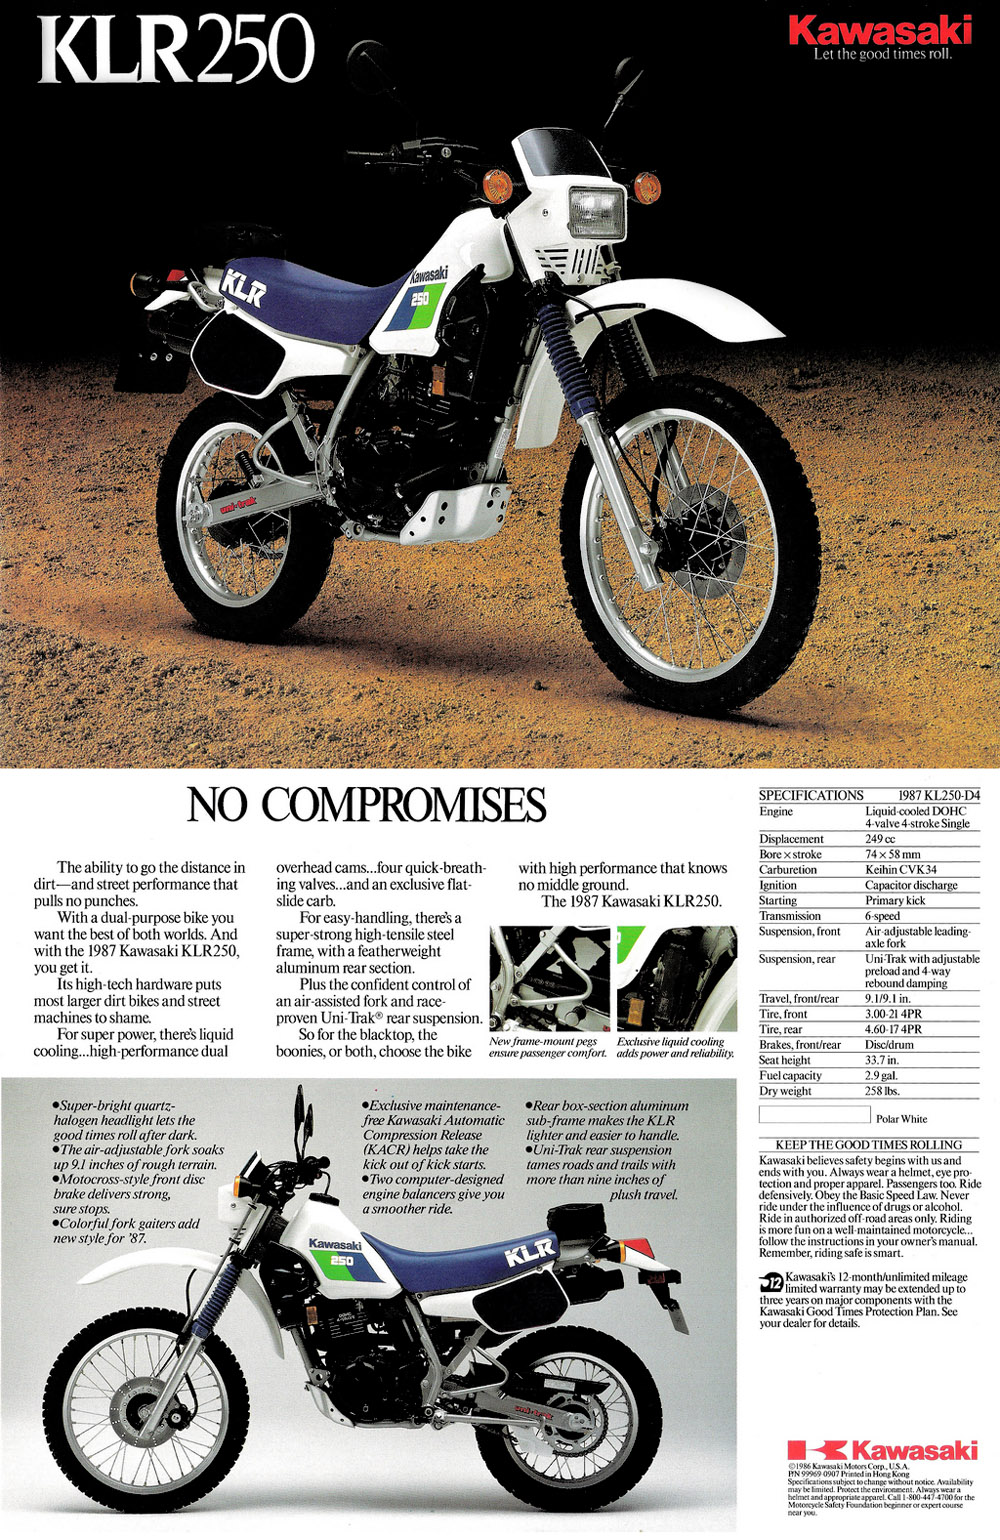 1996 Kawasaki KLR 250: pics, specs and information